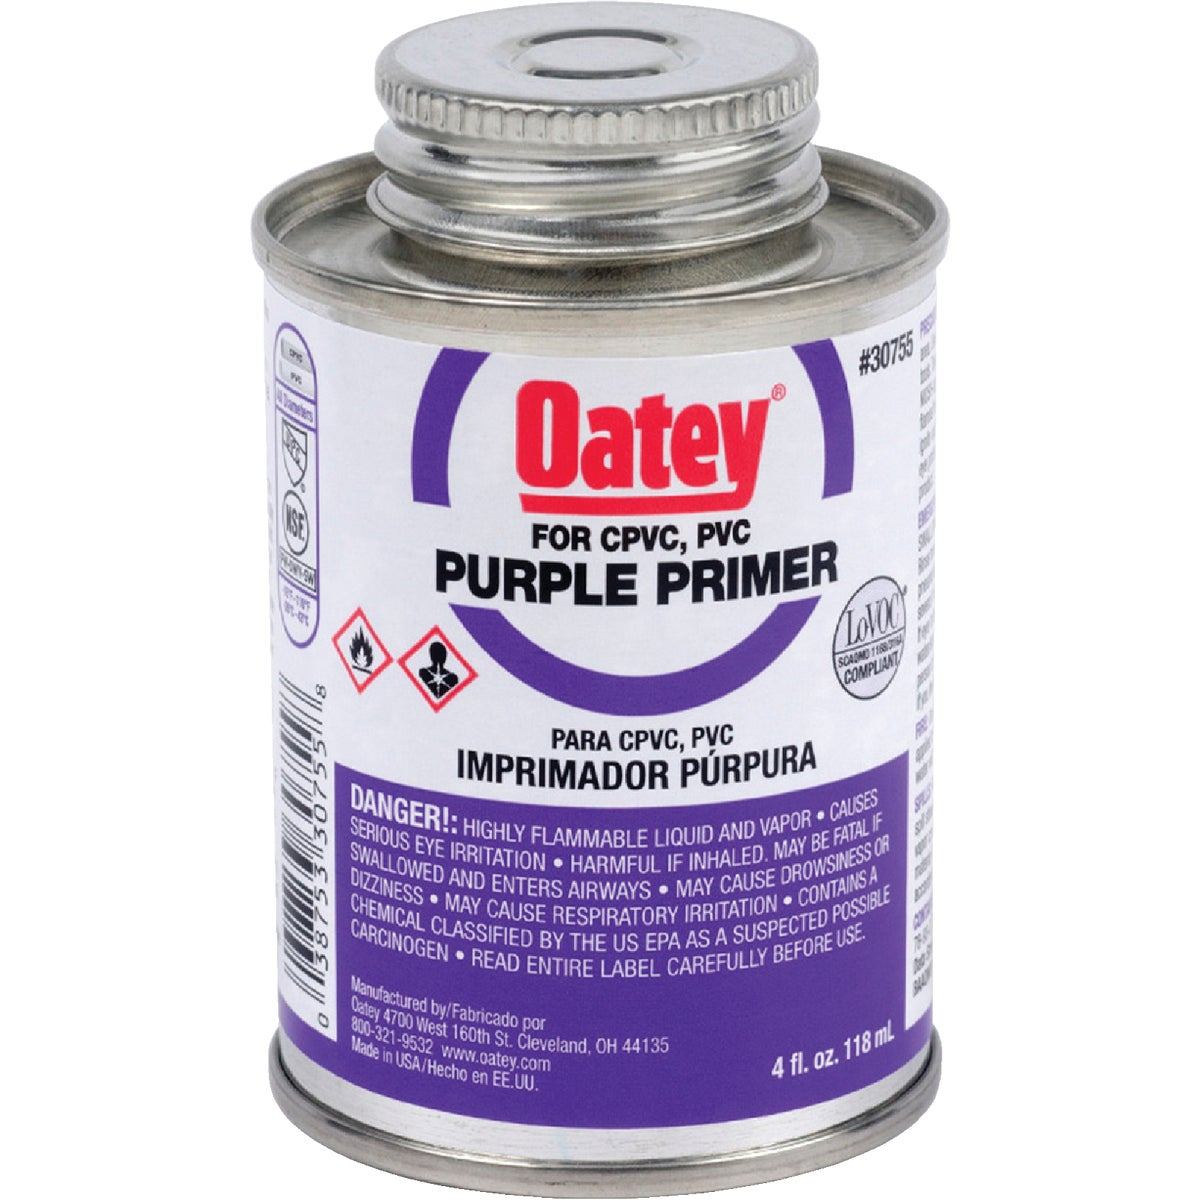 1/4PINT PURPLE PRIMER - 30755 by Oatey Scs